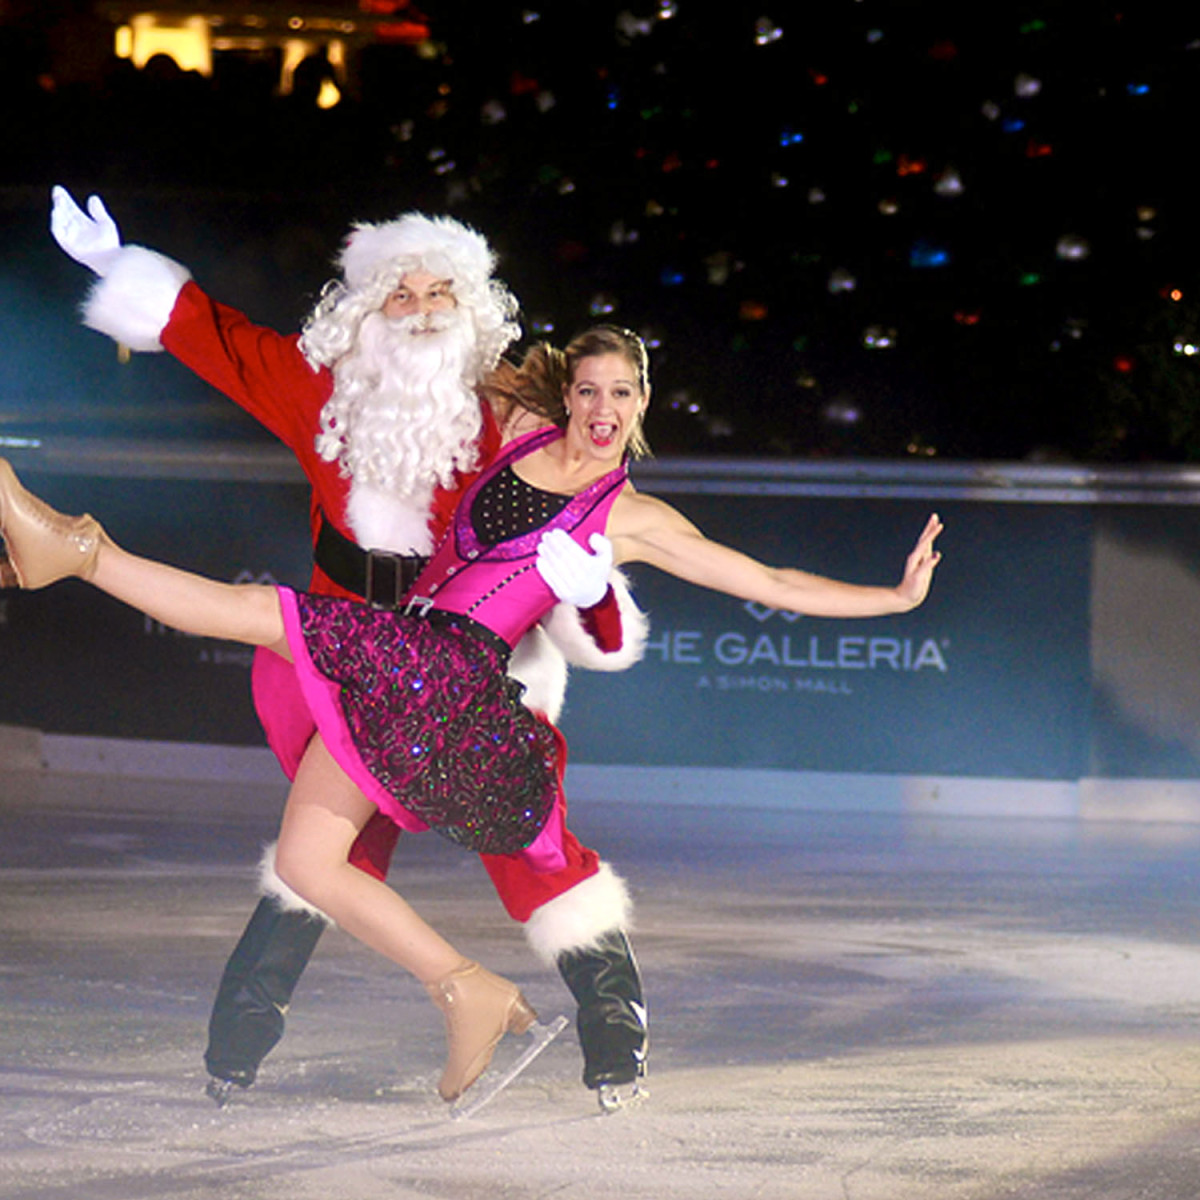 Galleria Ice Spectacular Nov 2015 Santa and skater